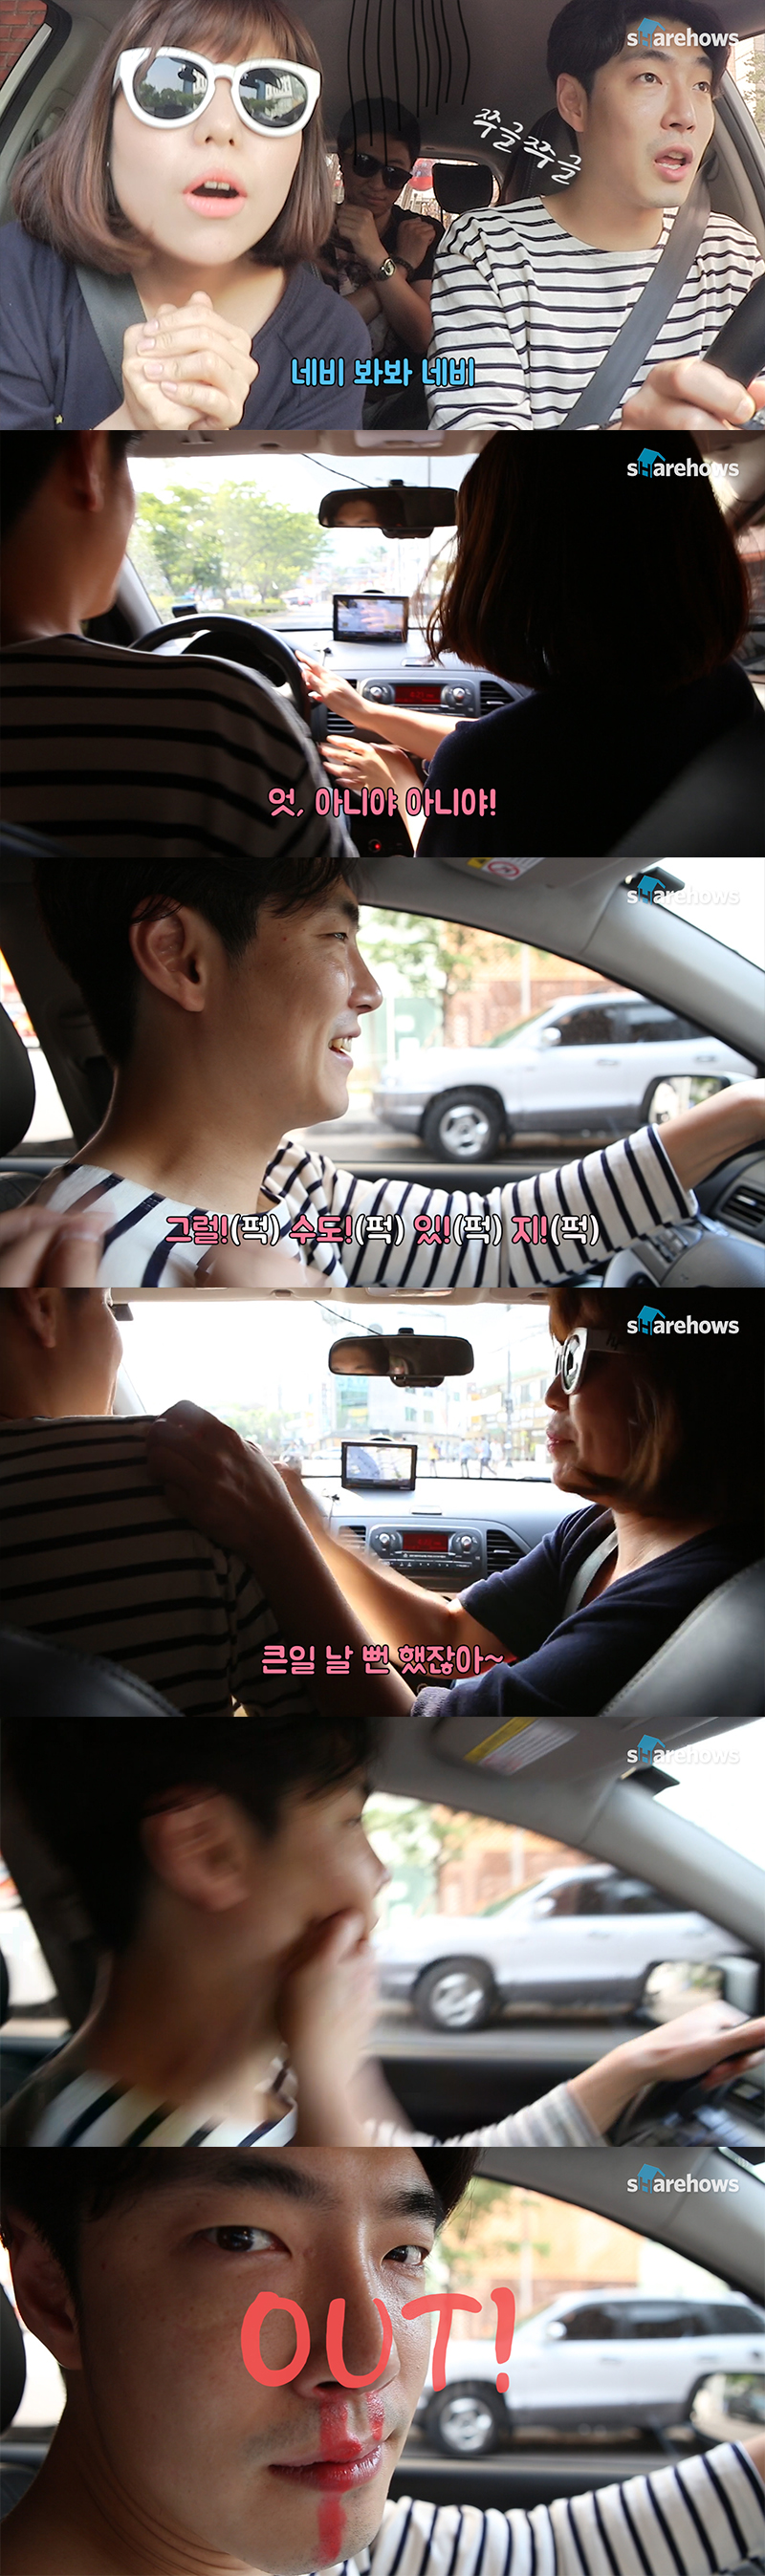 how to get the passenger seat 02